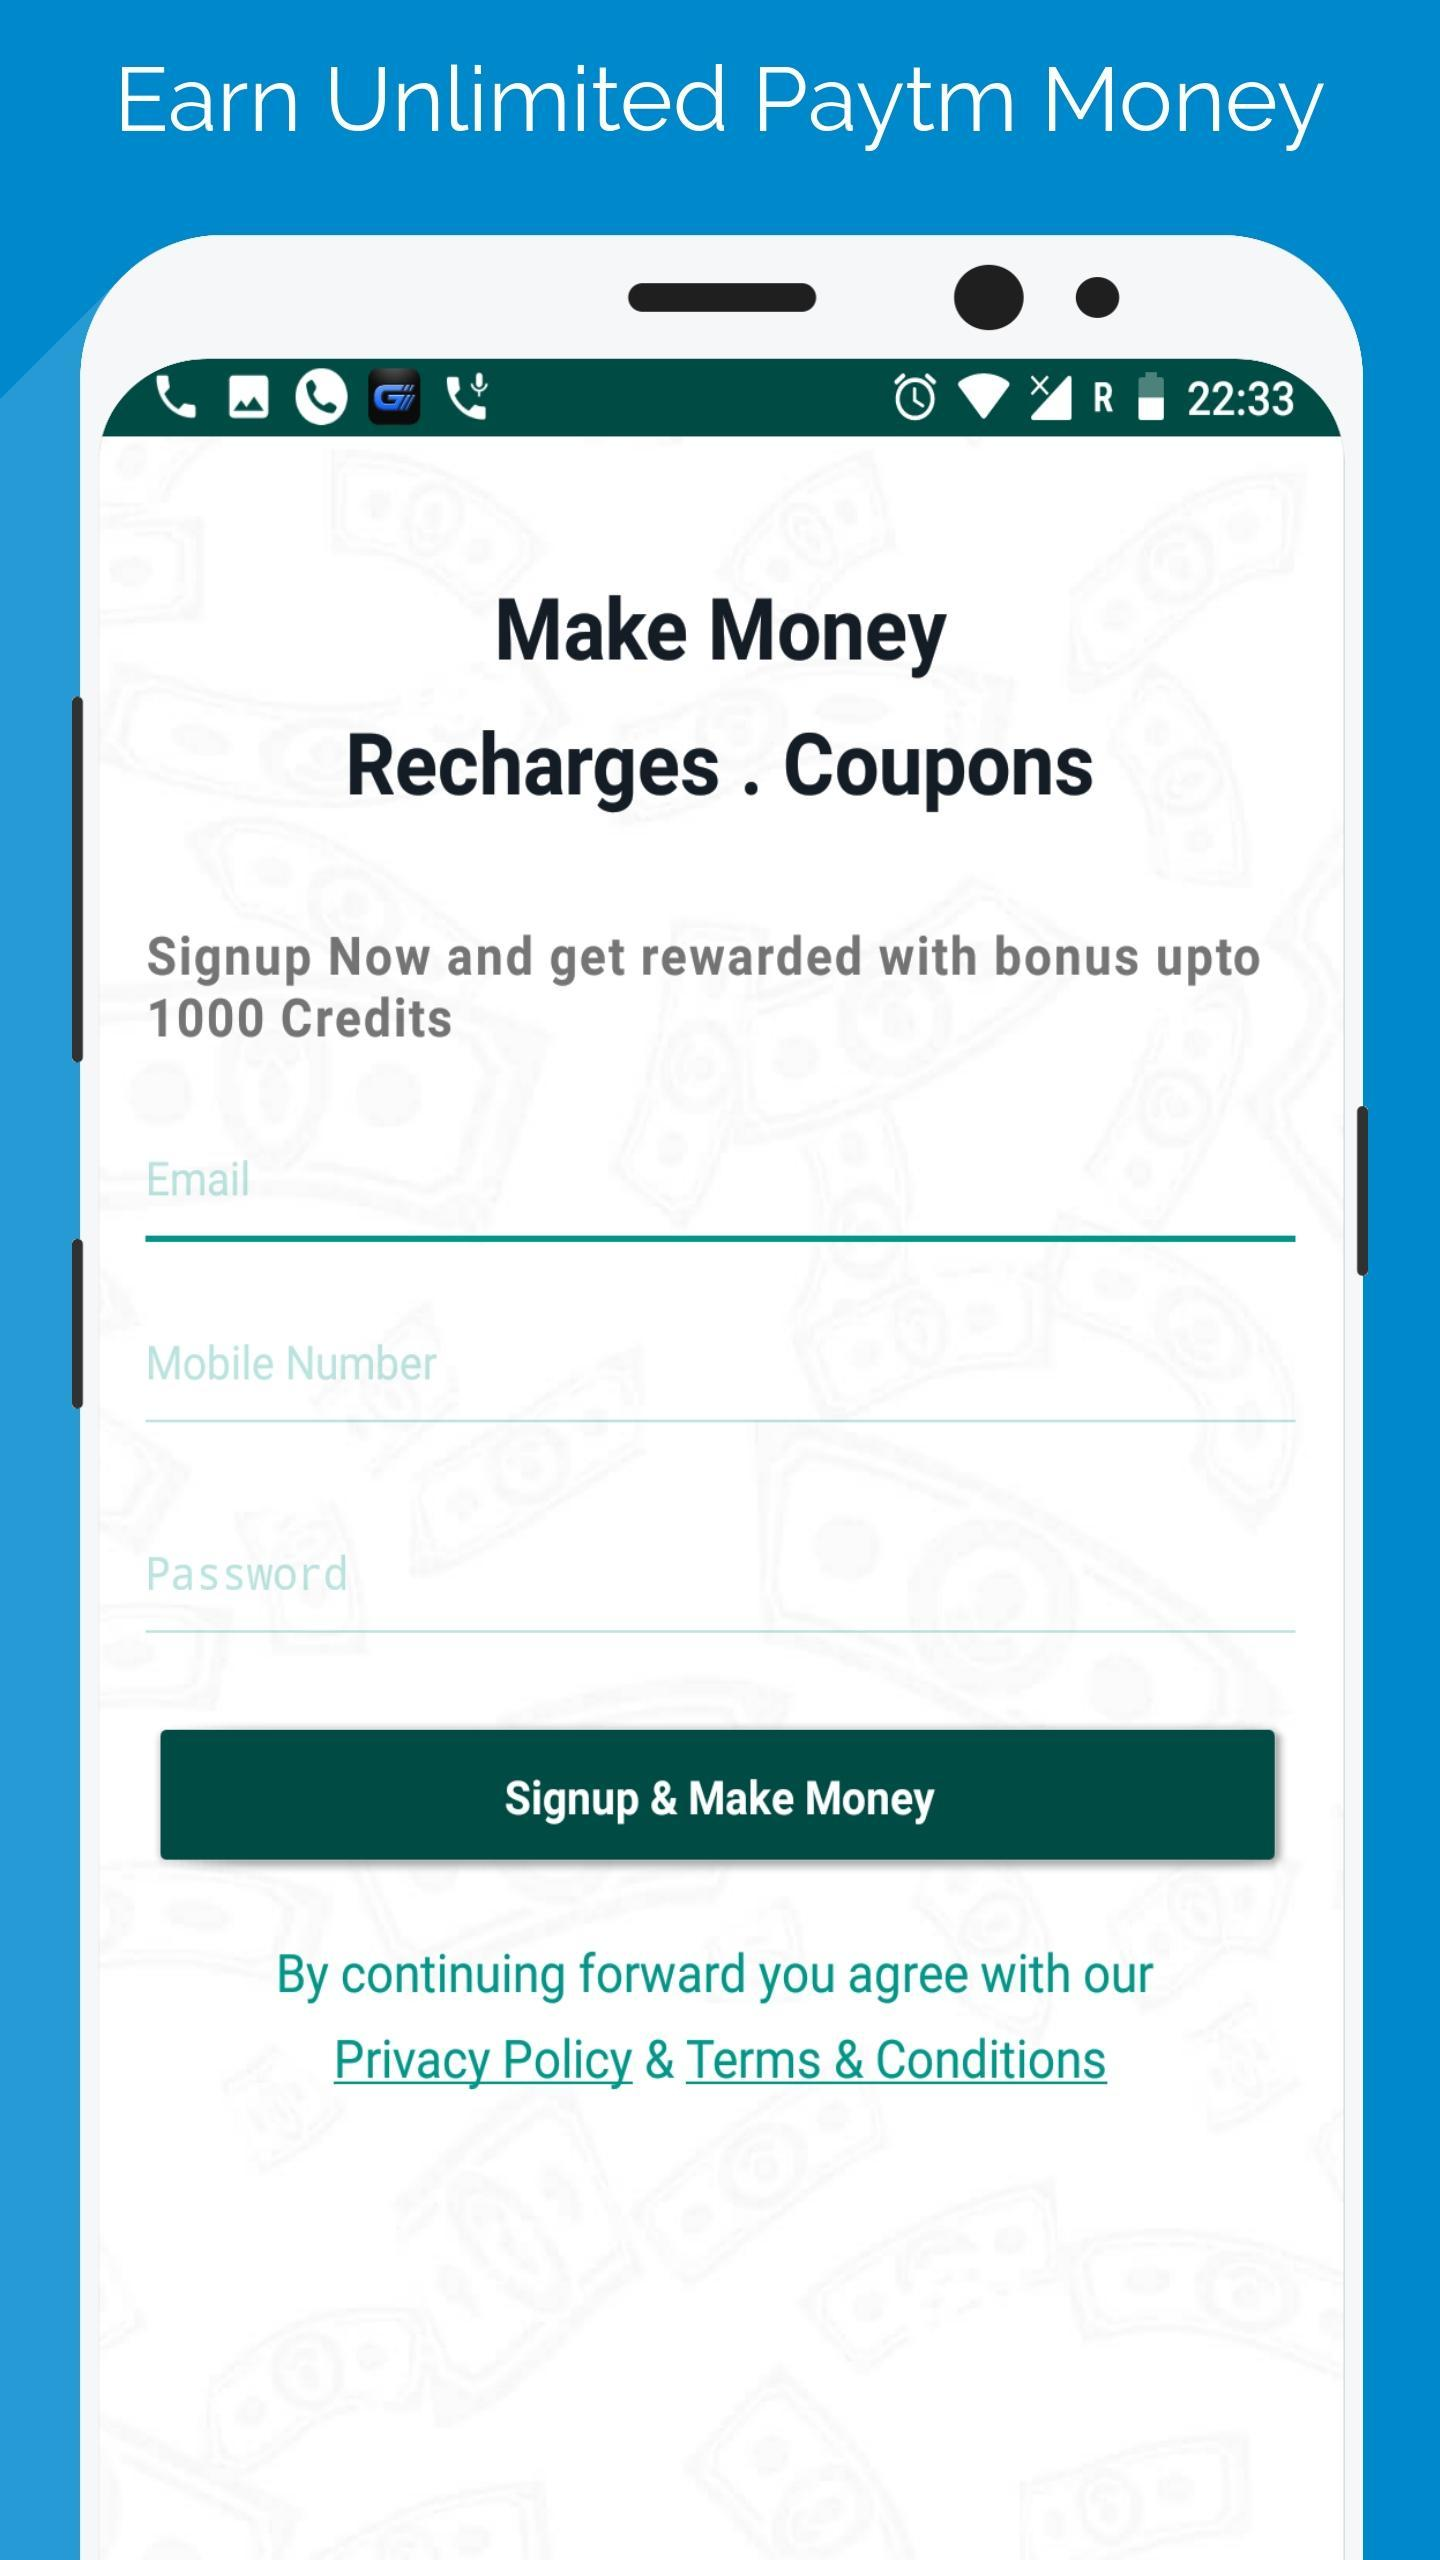 Free Paytm Money - Earn Unlimited Paytm Money for Android - APK Download